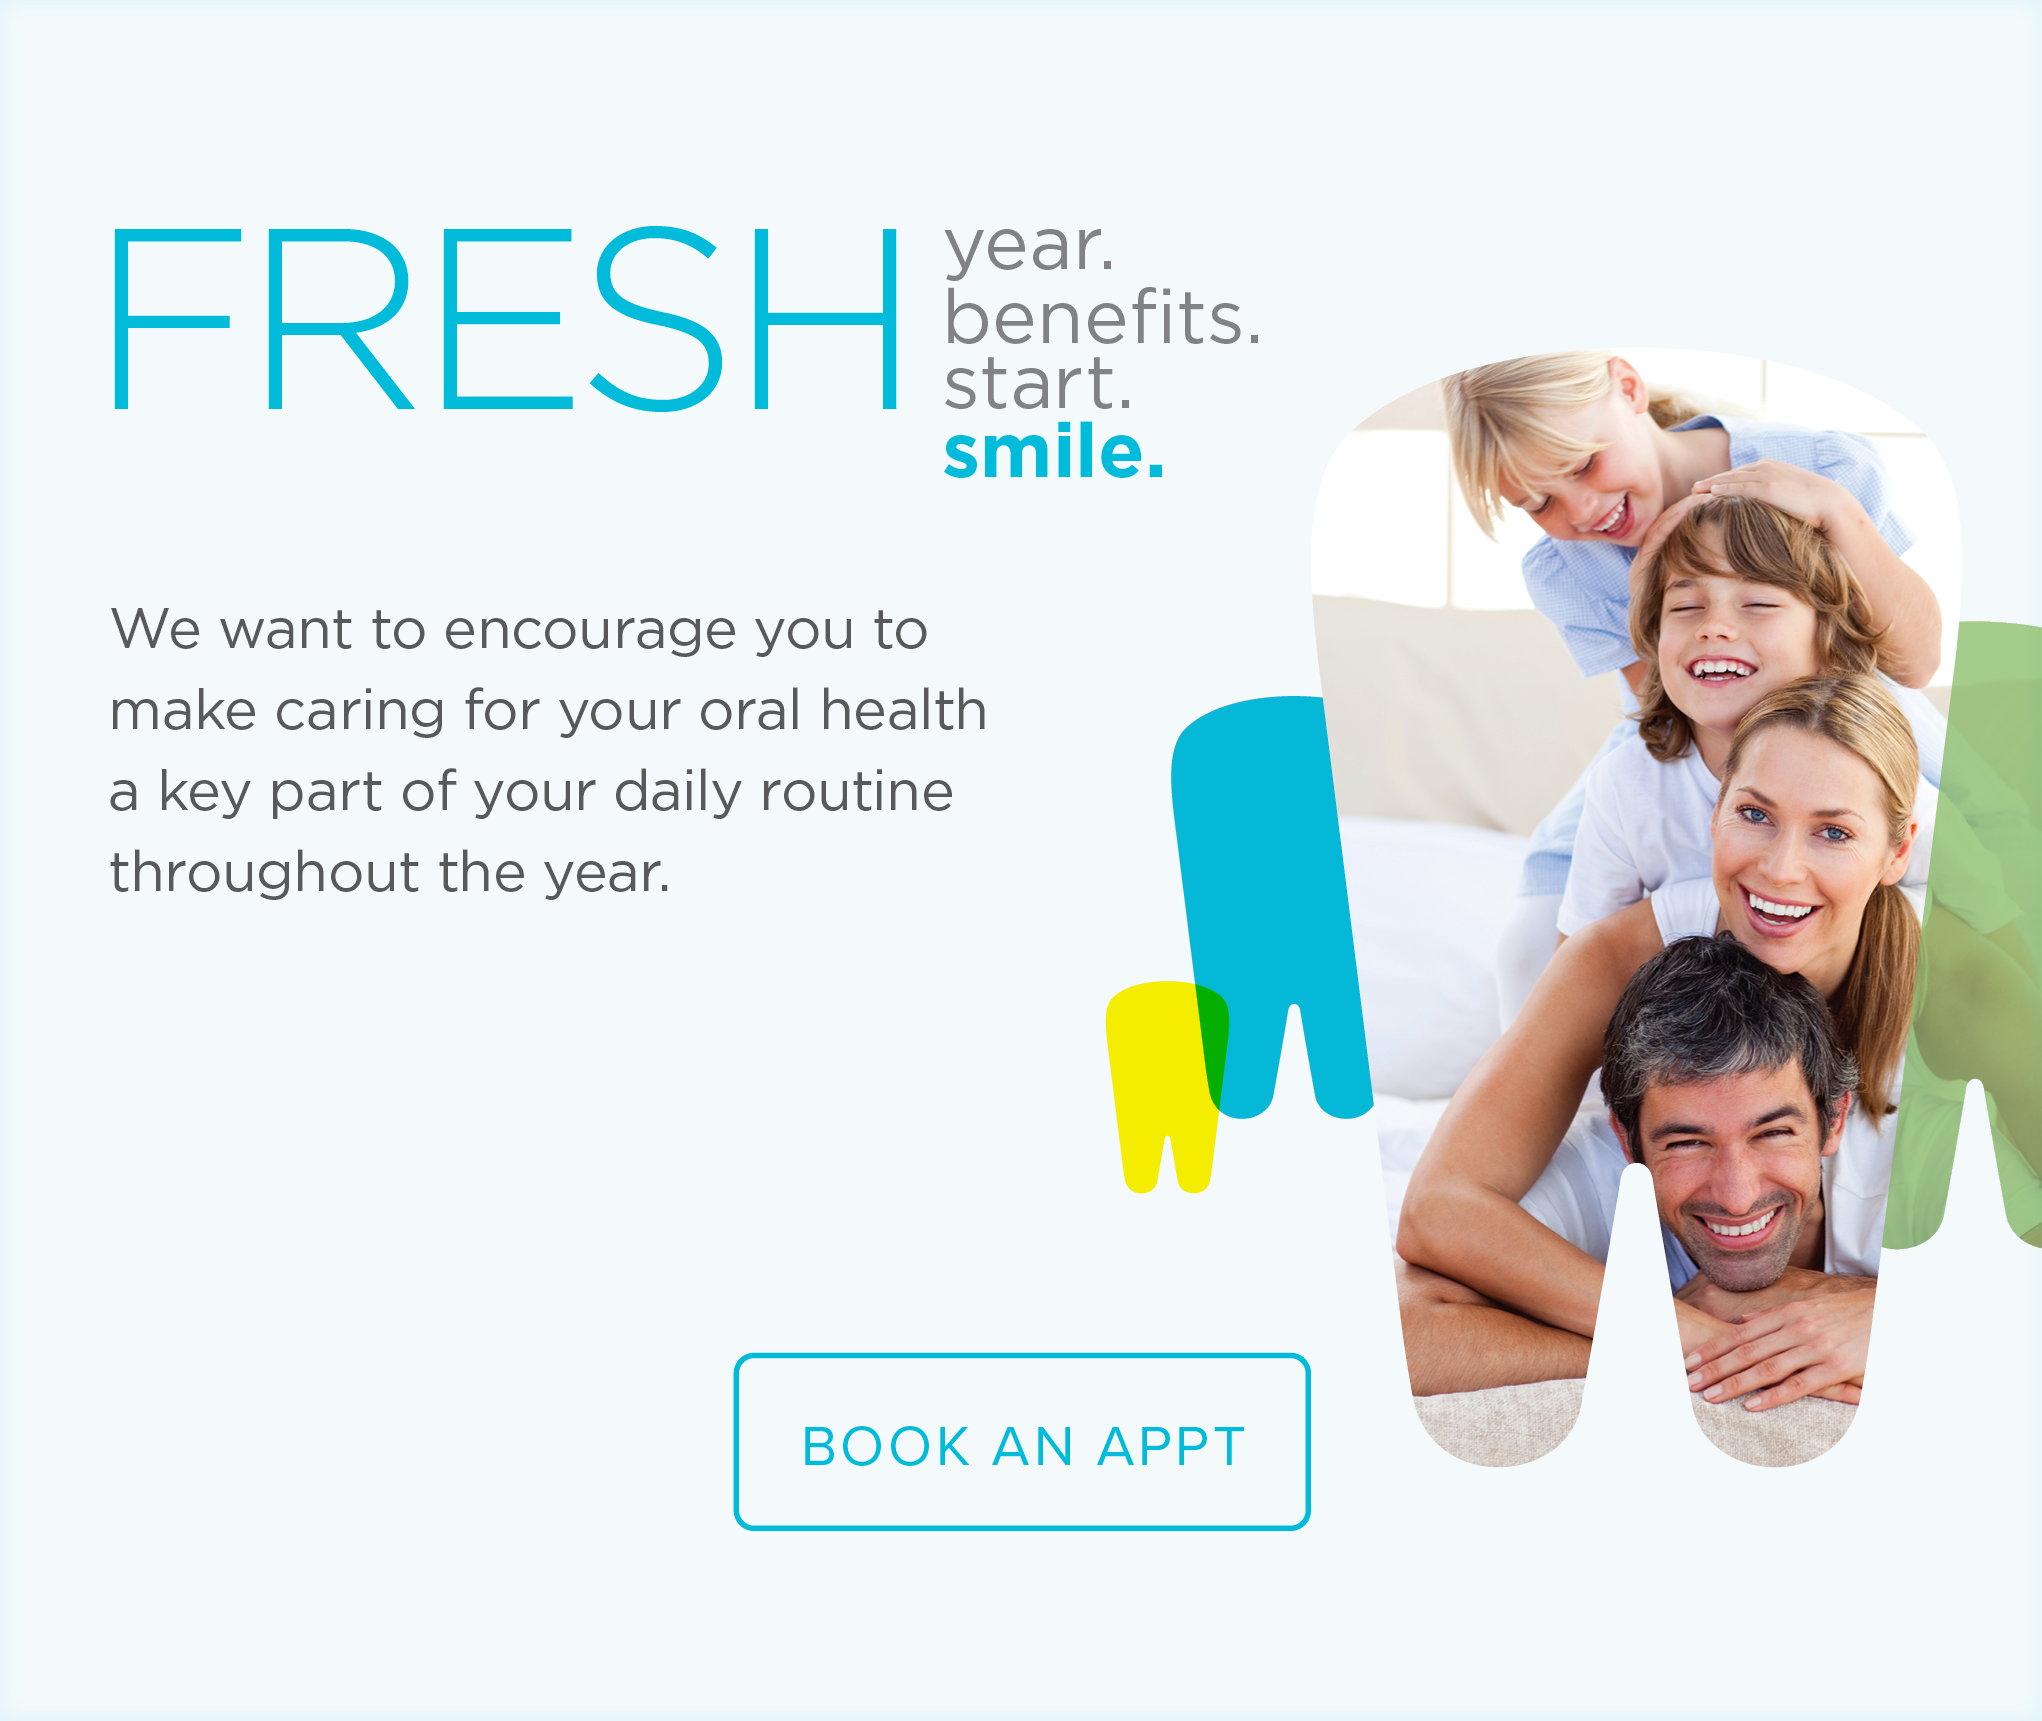 Canyon Modern Dentistry and Orthodontics - Make the Most of Your Benefits